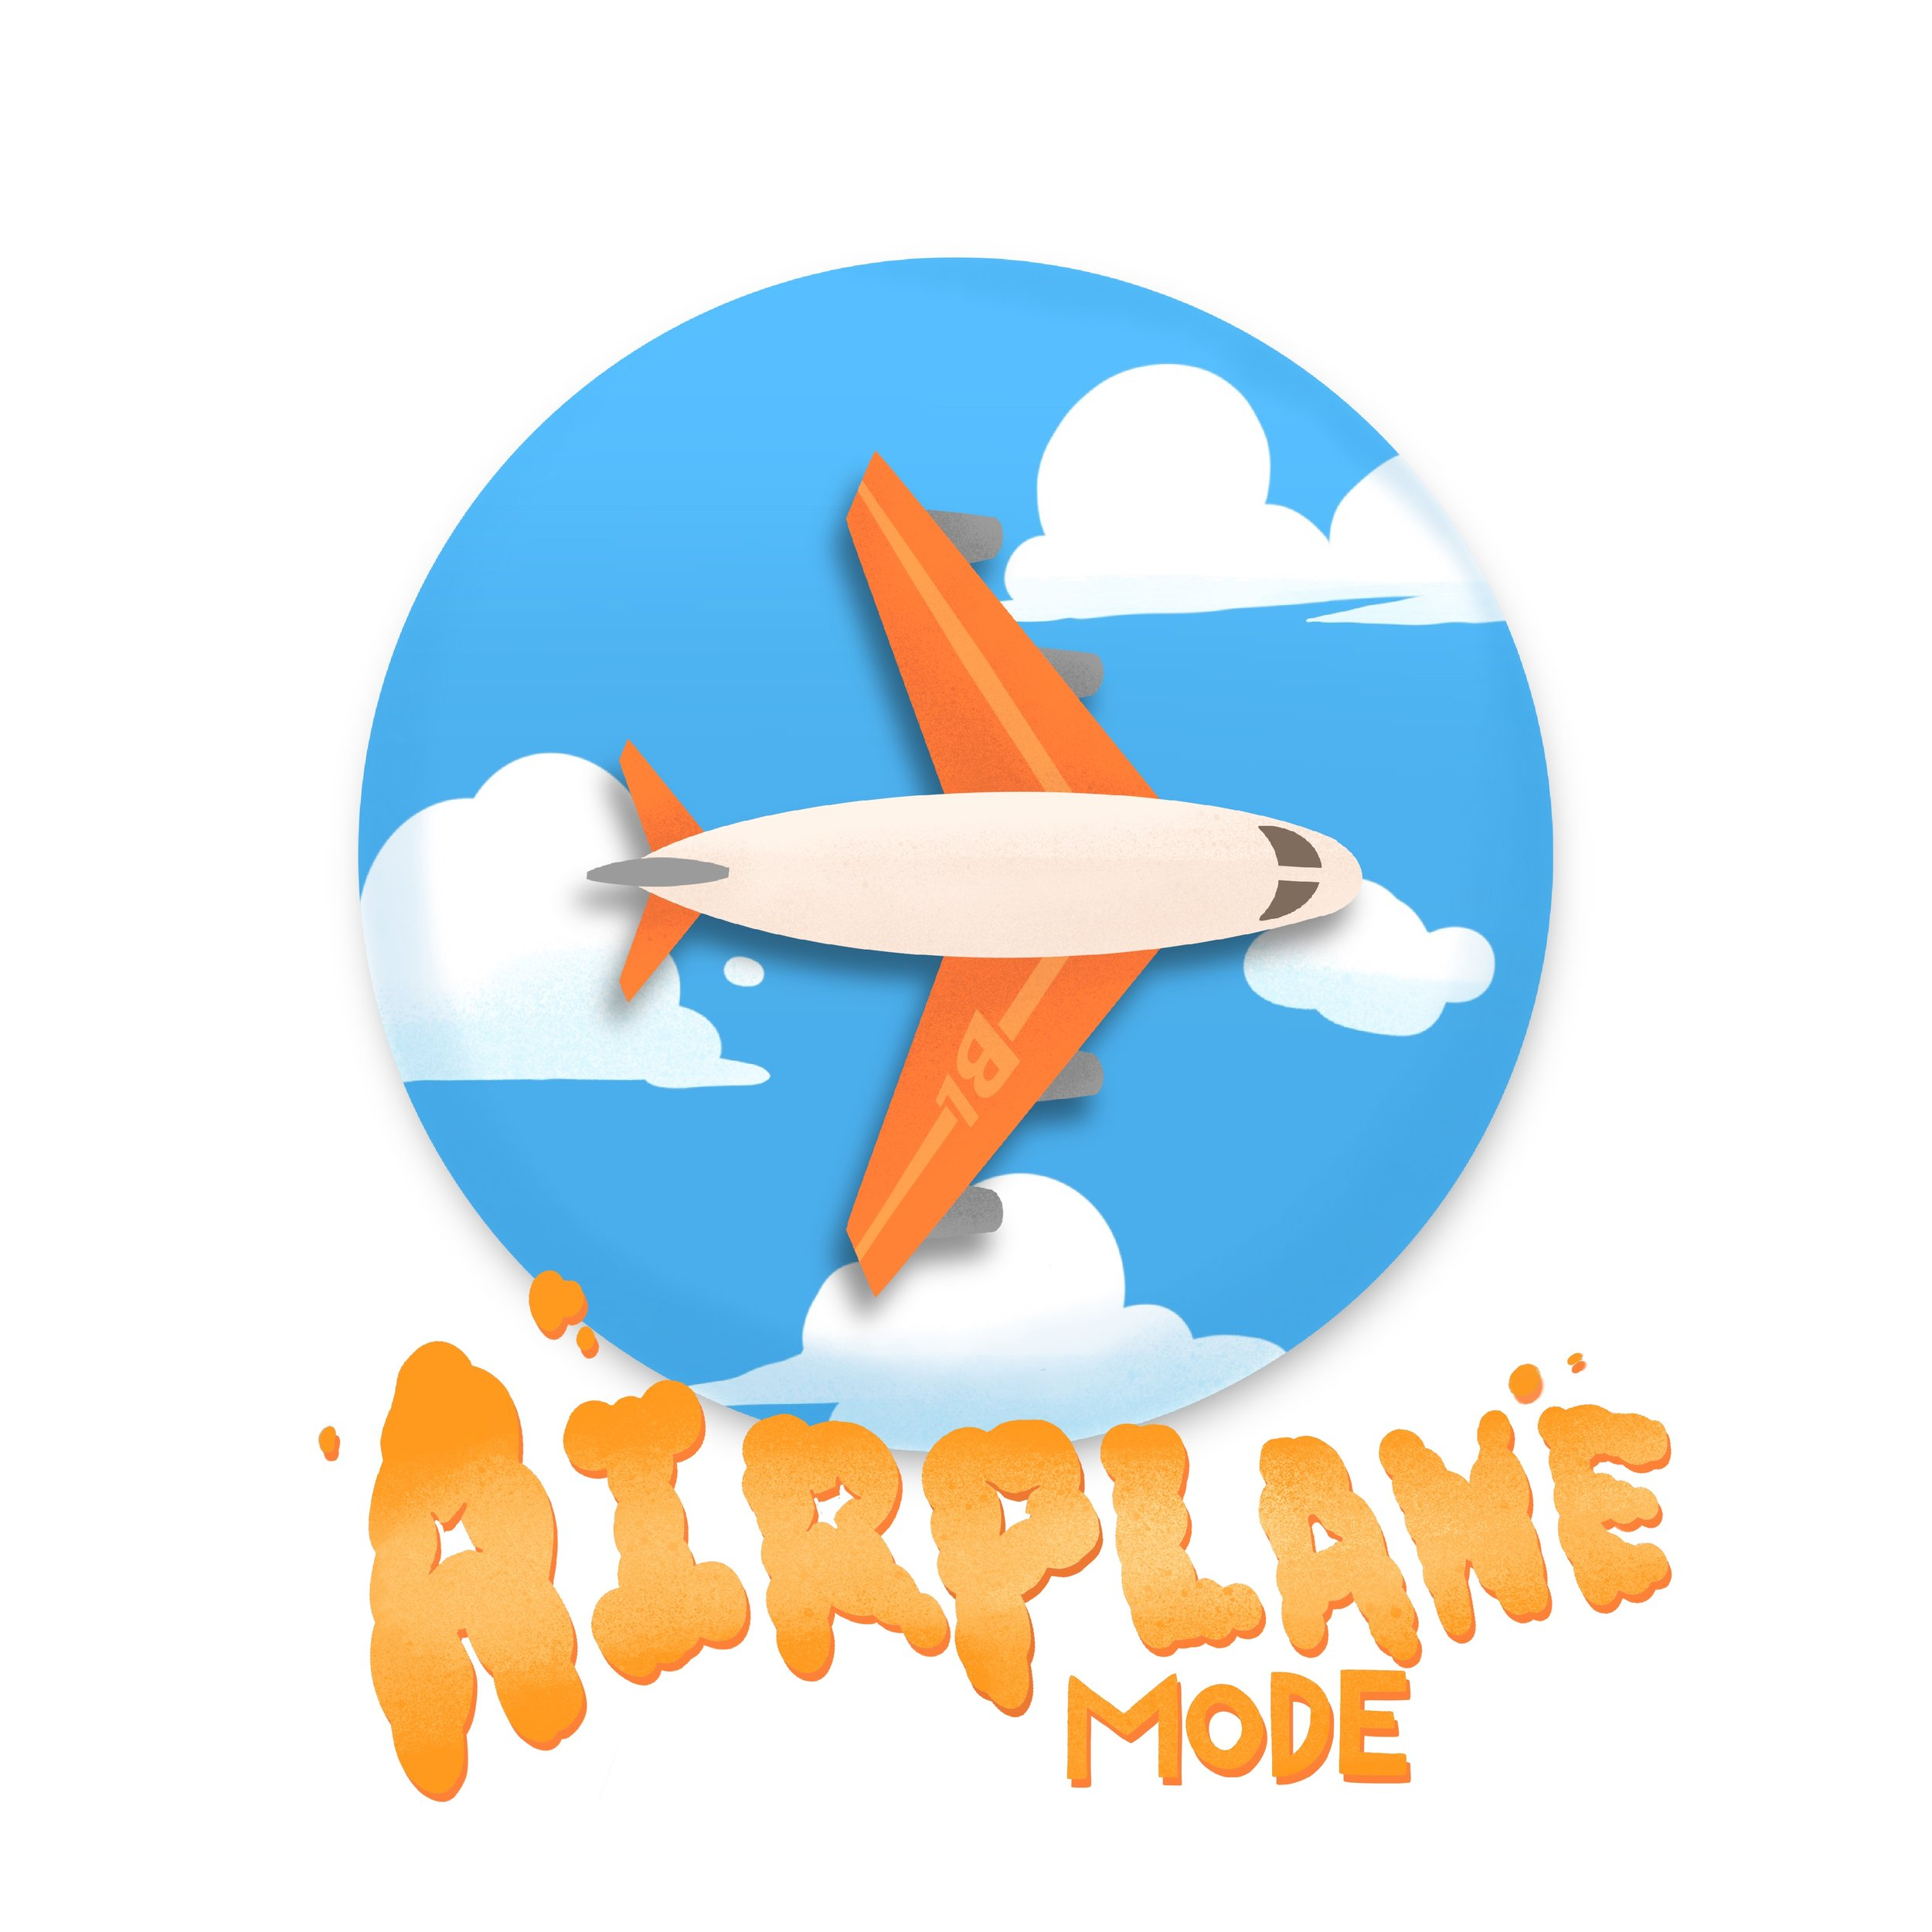 Airplane Mode Cover Art.JPG